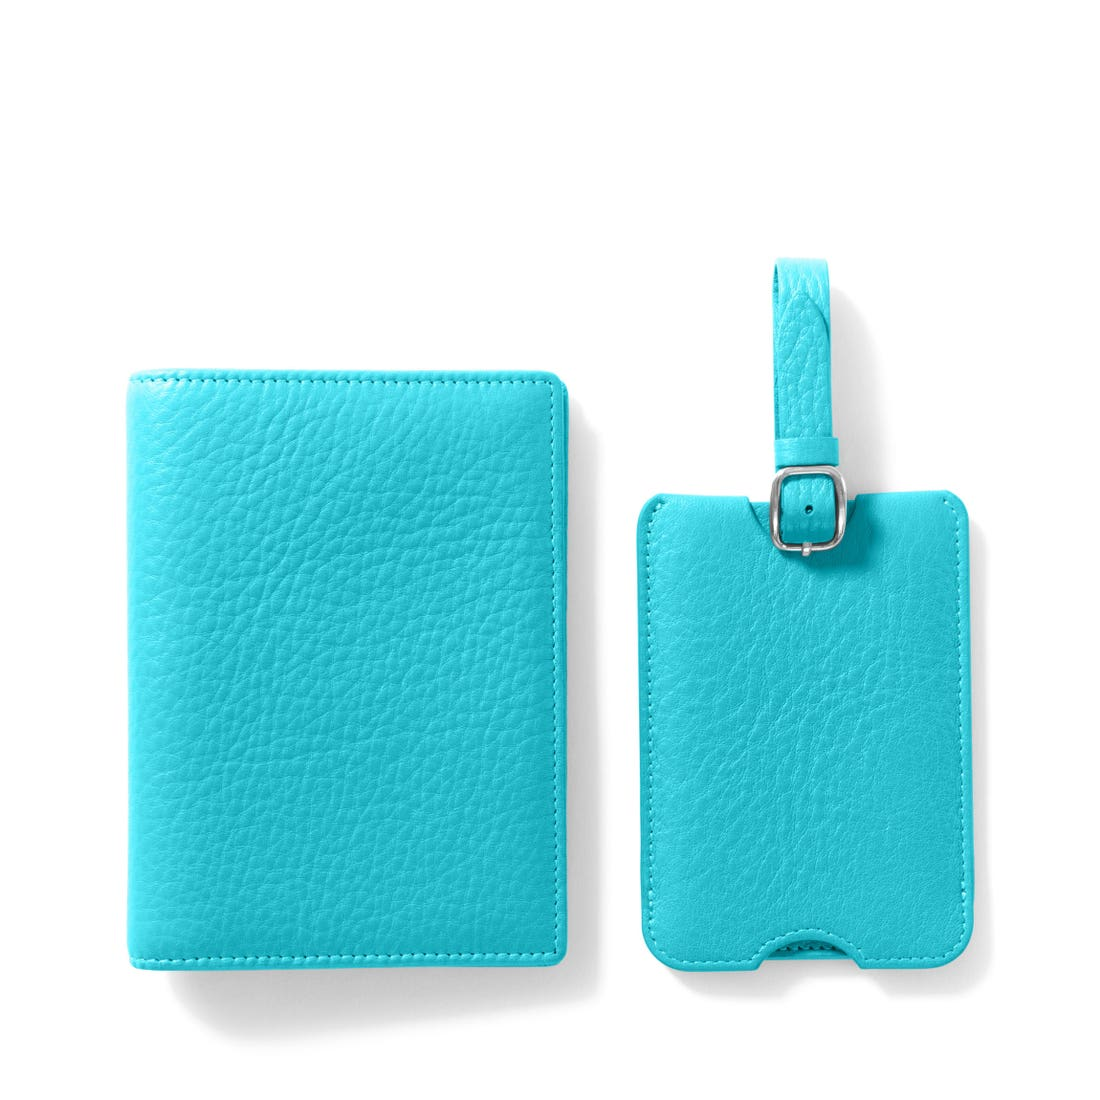 Deluxe Passport Cover + Luggage Tag Set